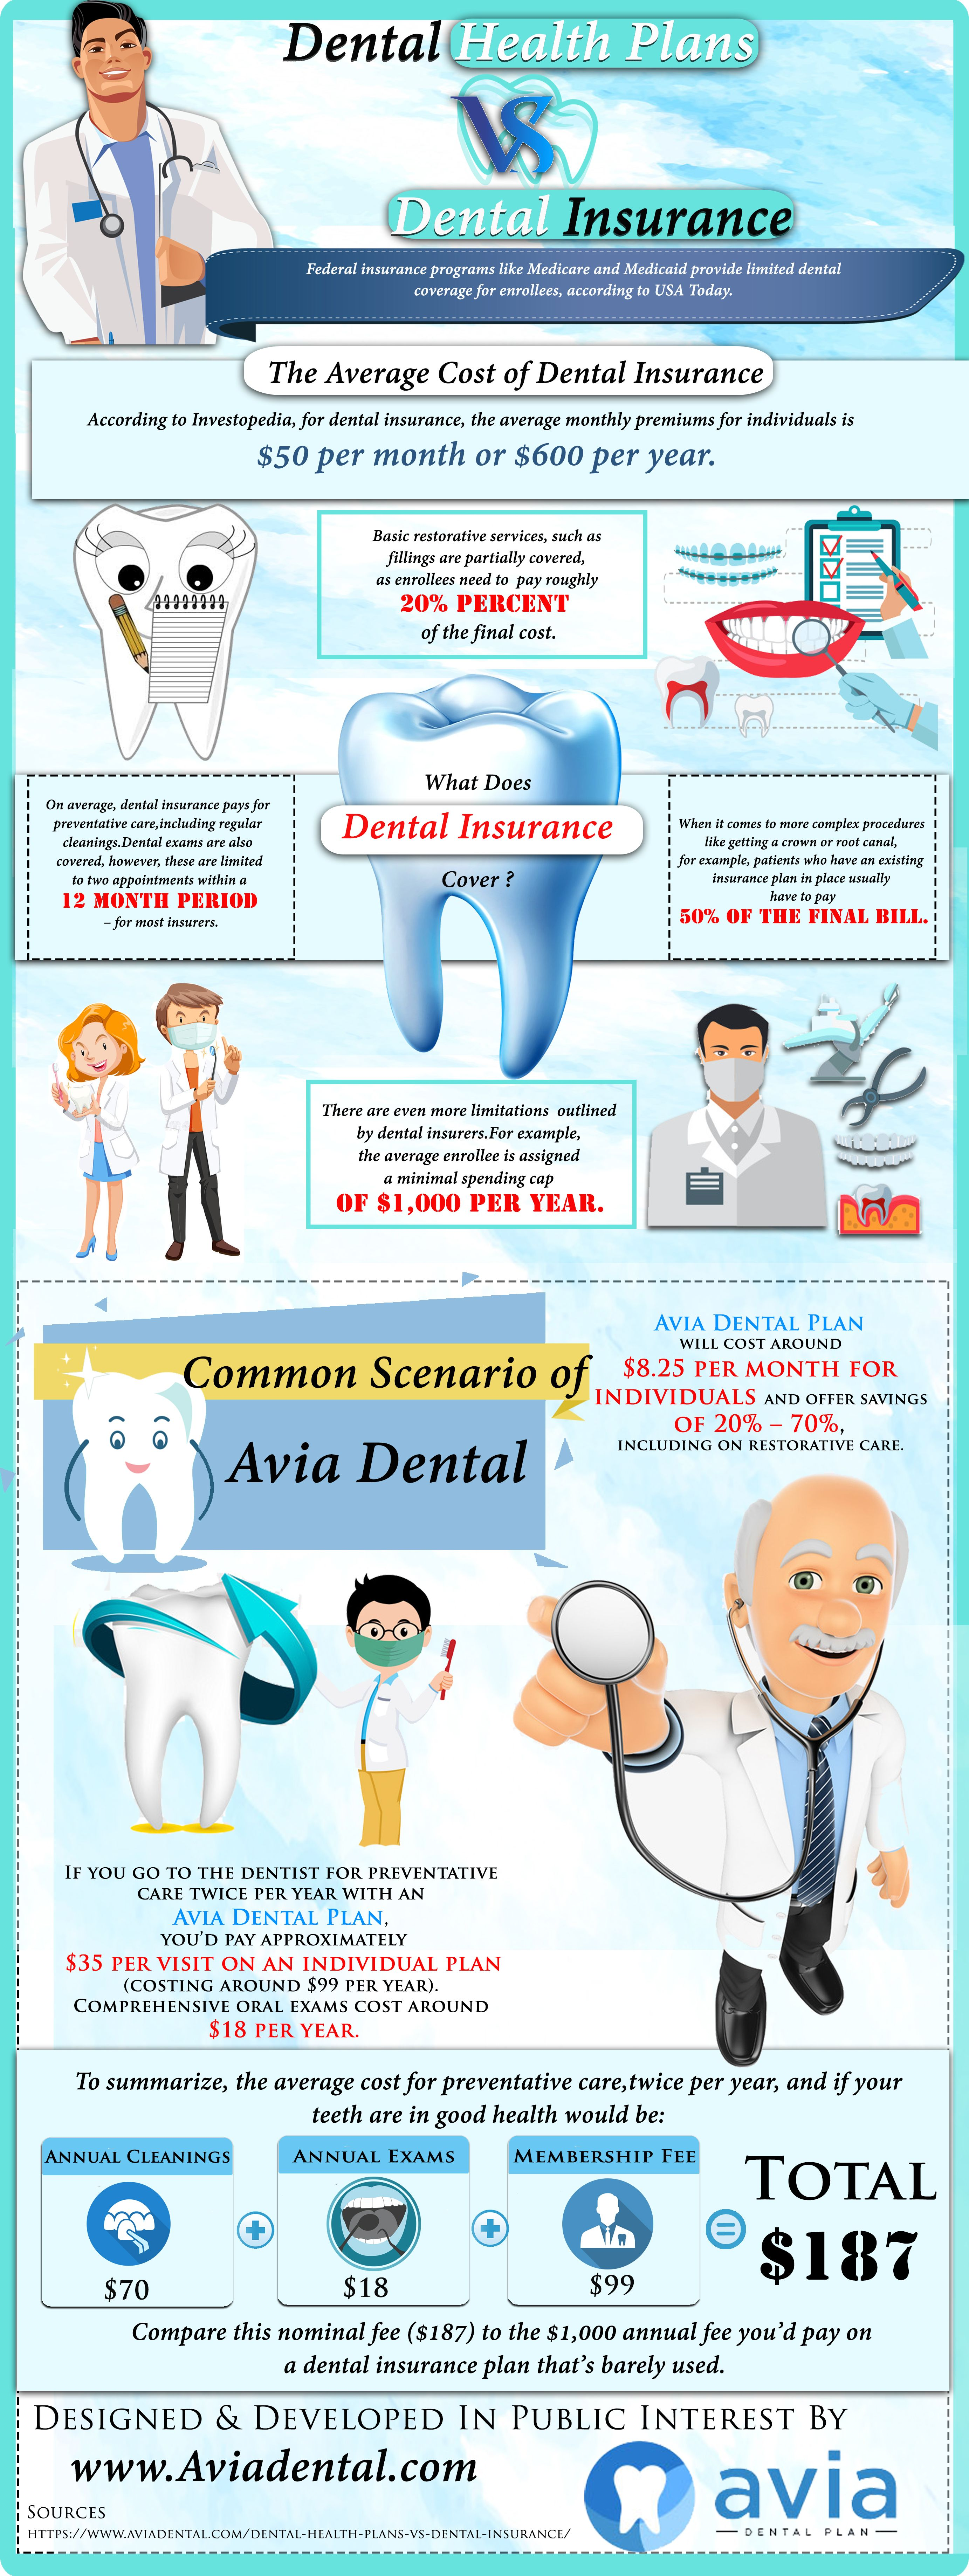 Discount dental plans for families individuals groups